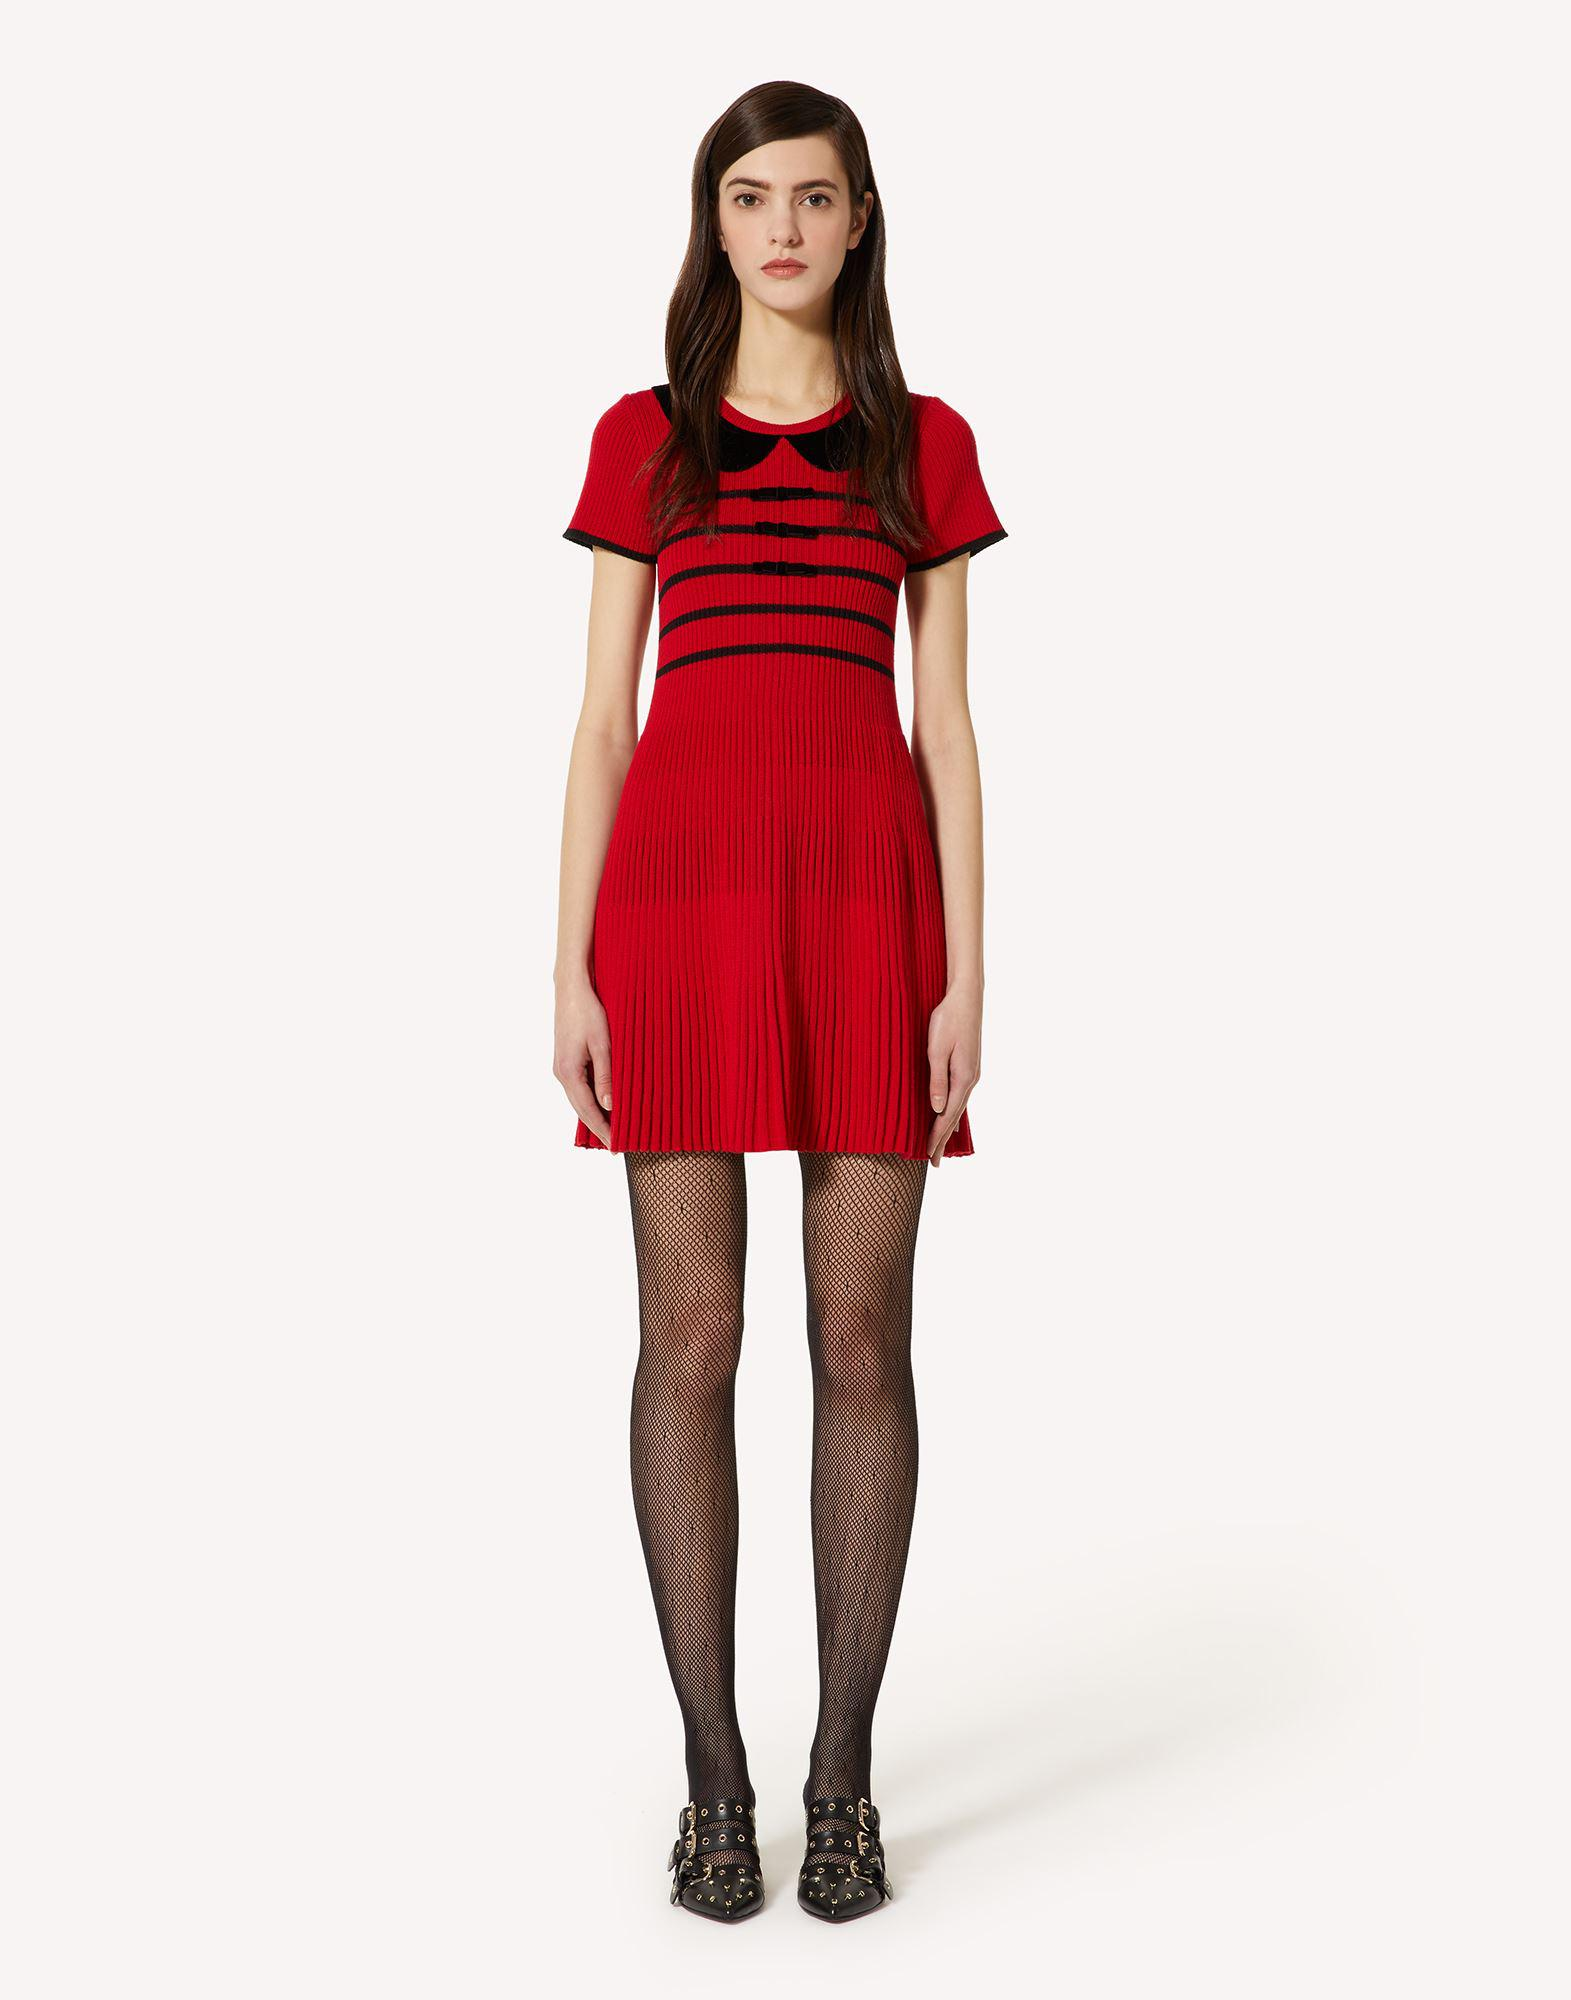 WOOL KNIT DRESS WITH BOWS